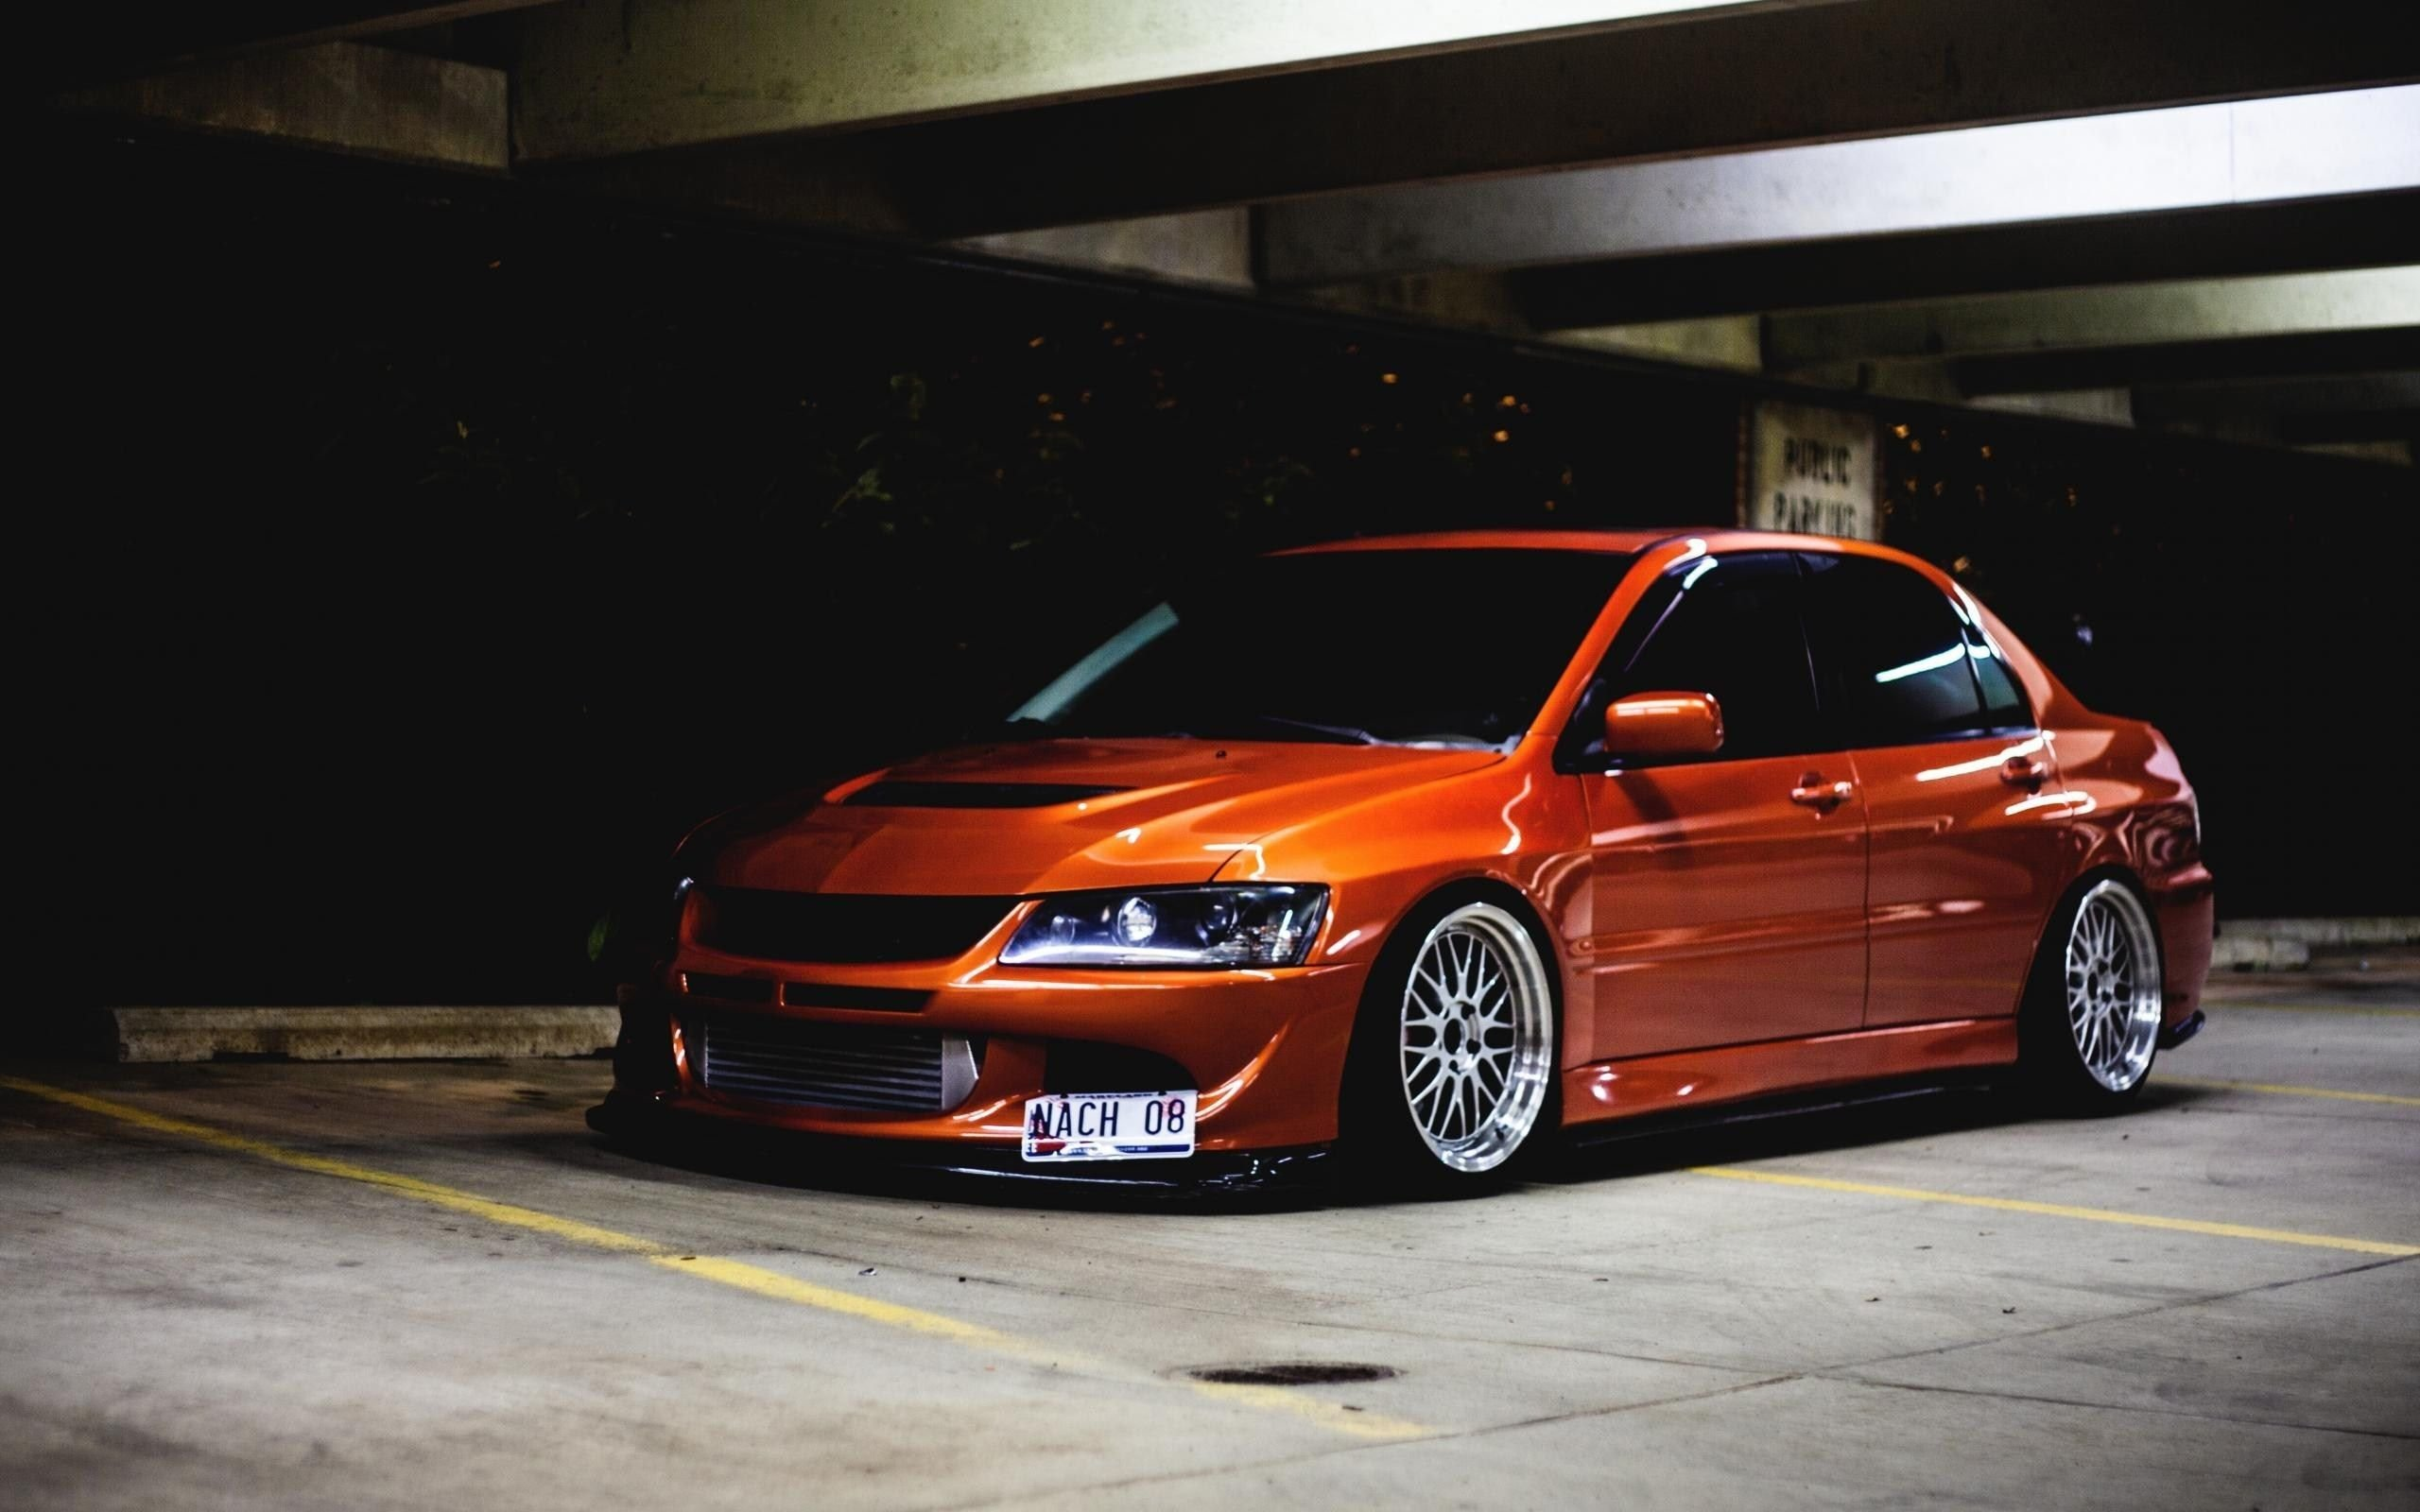 Latest 29 Mitsubishi Evolution Viii Hd Wallpapers Backgrounds Free Download